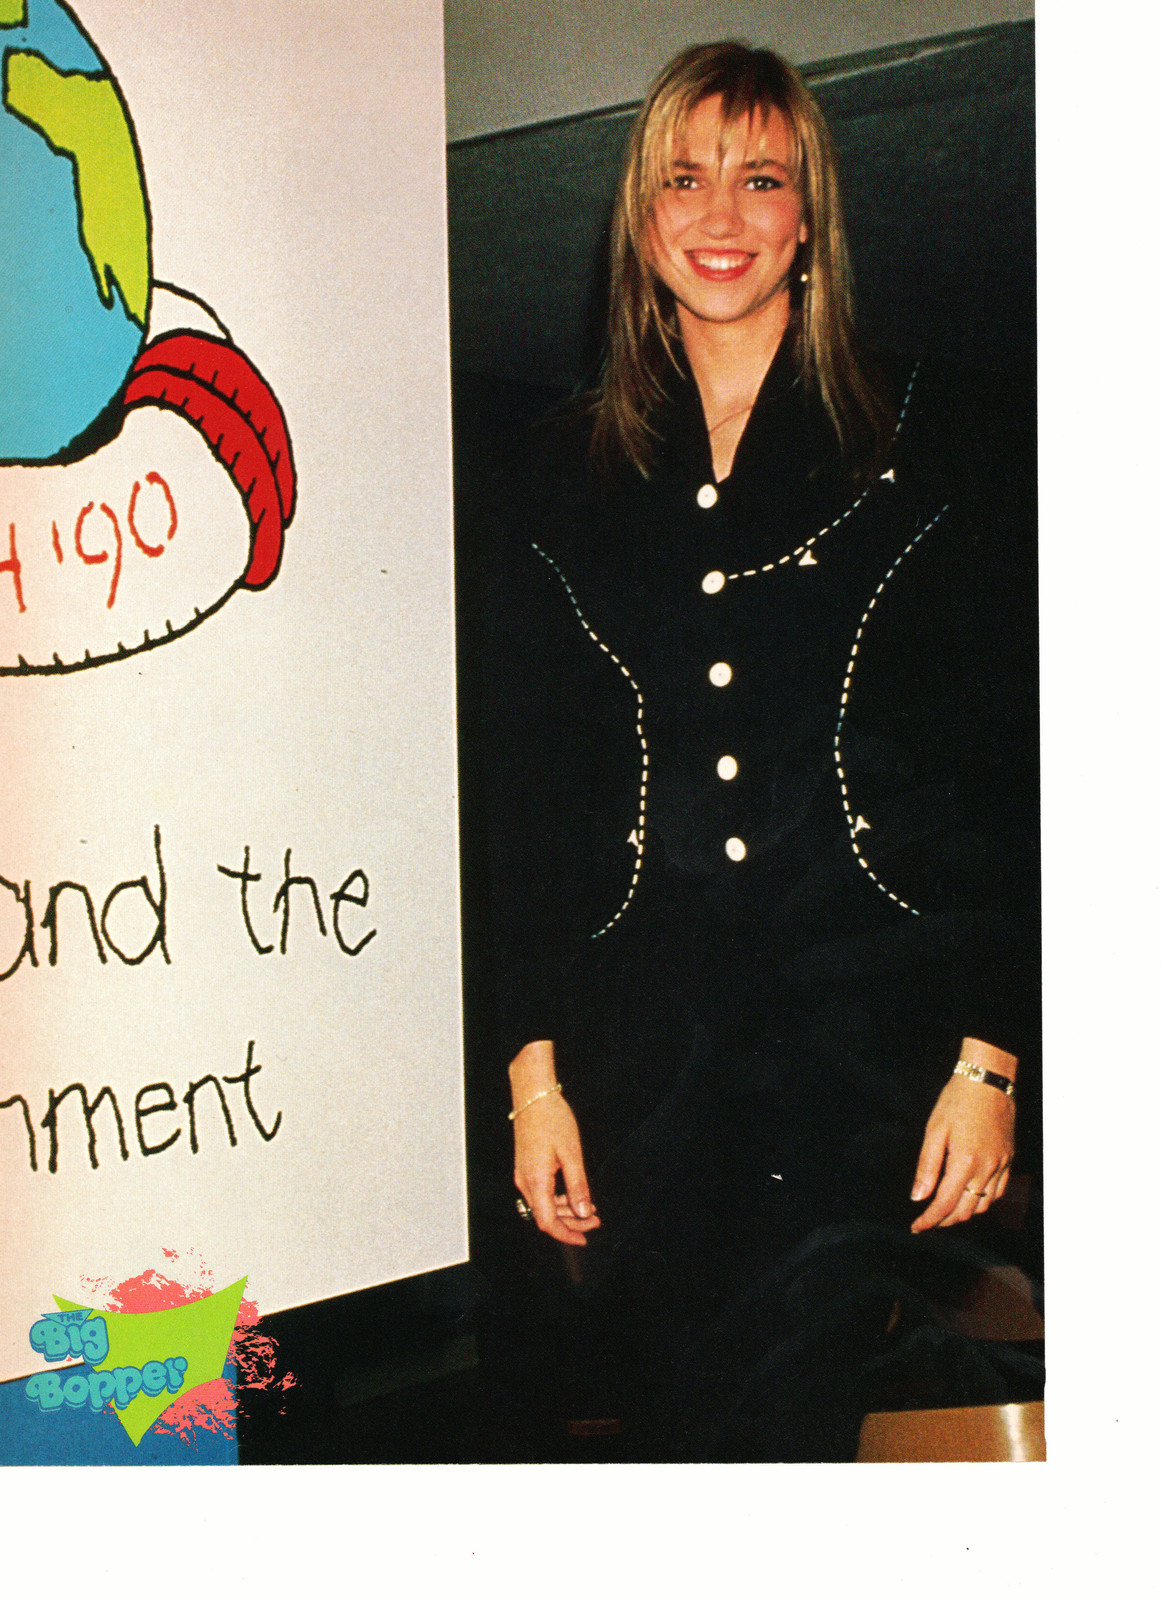 Debbie Gibson teen magazine pinup clipping standing by a sign black suit Bop - $3.50